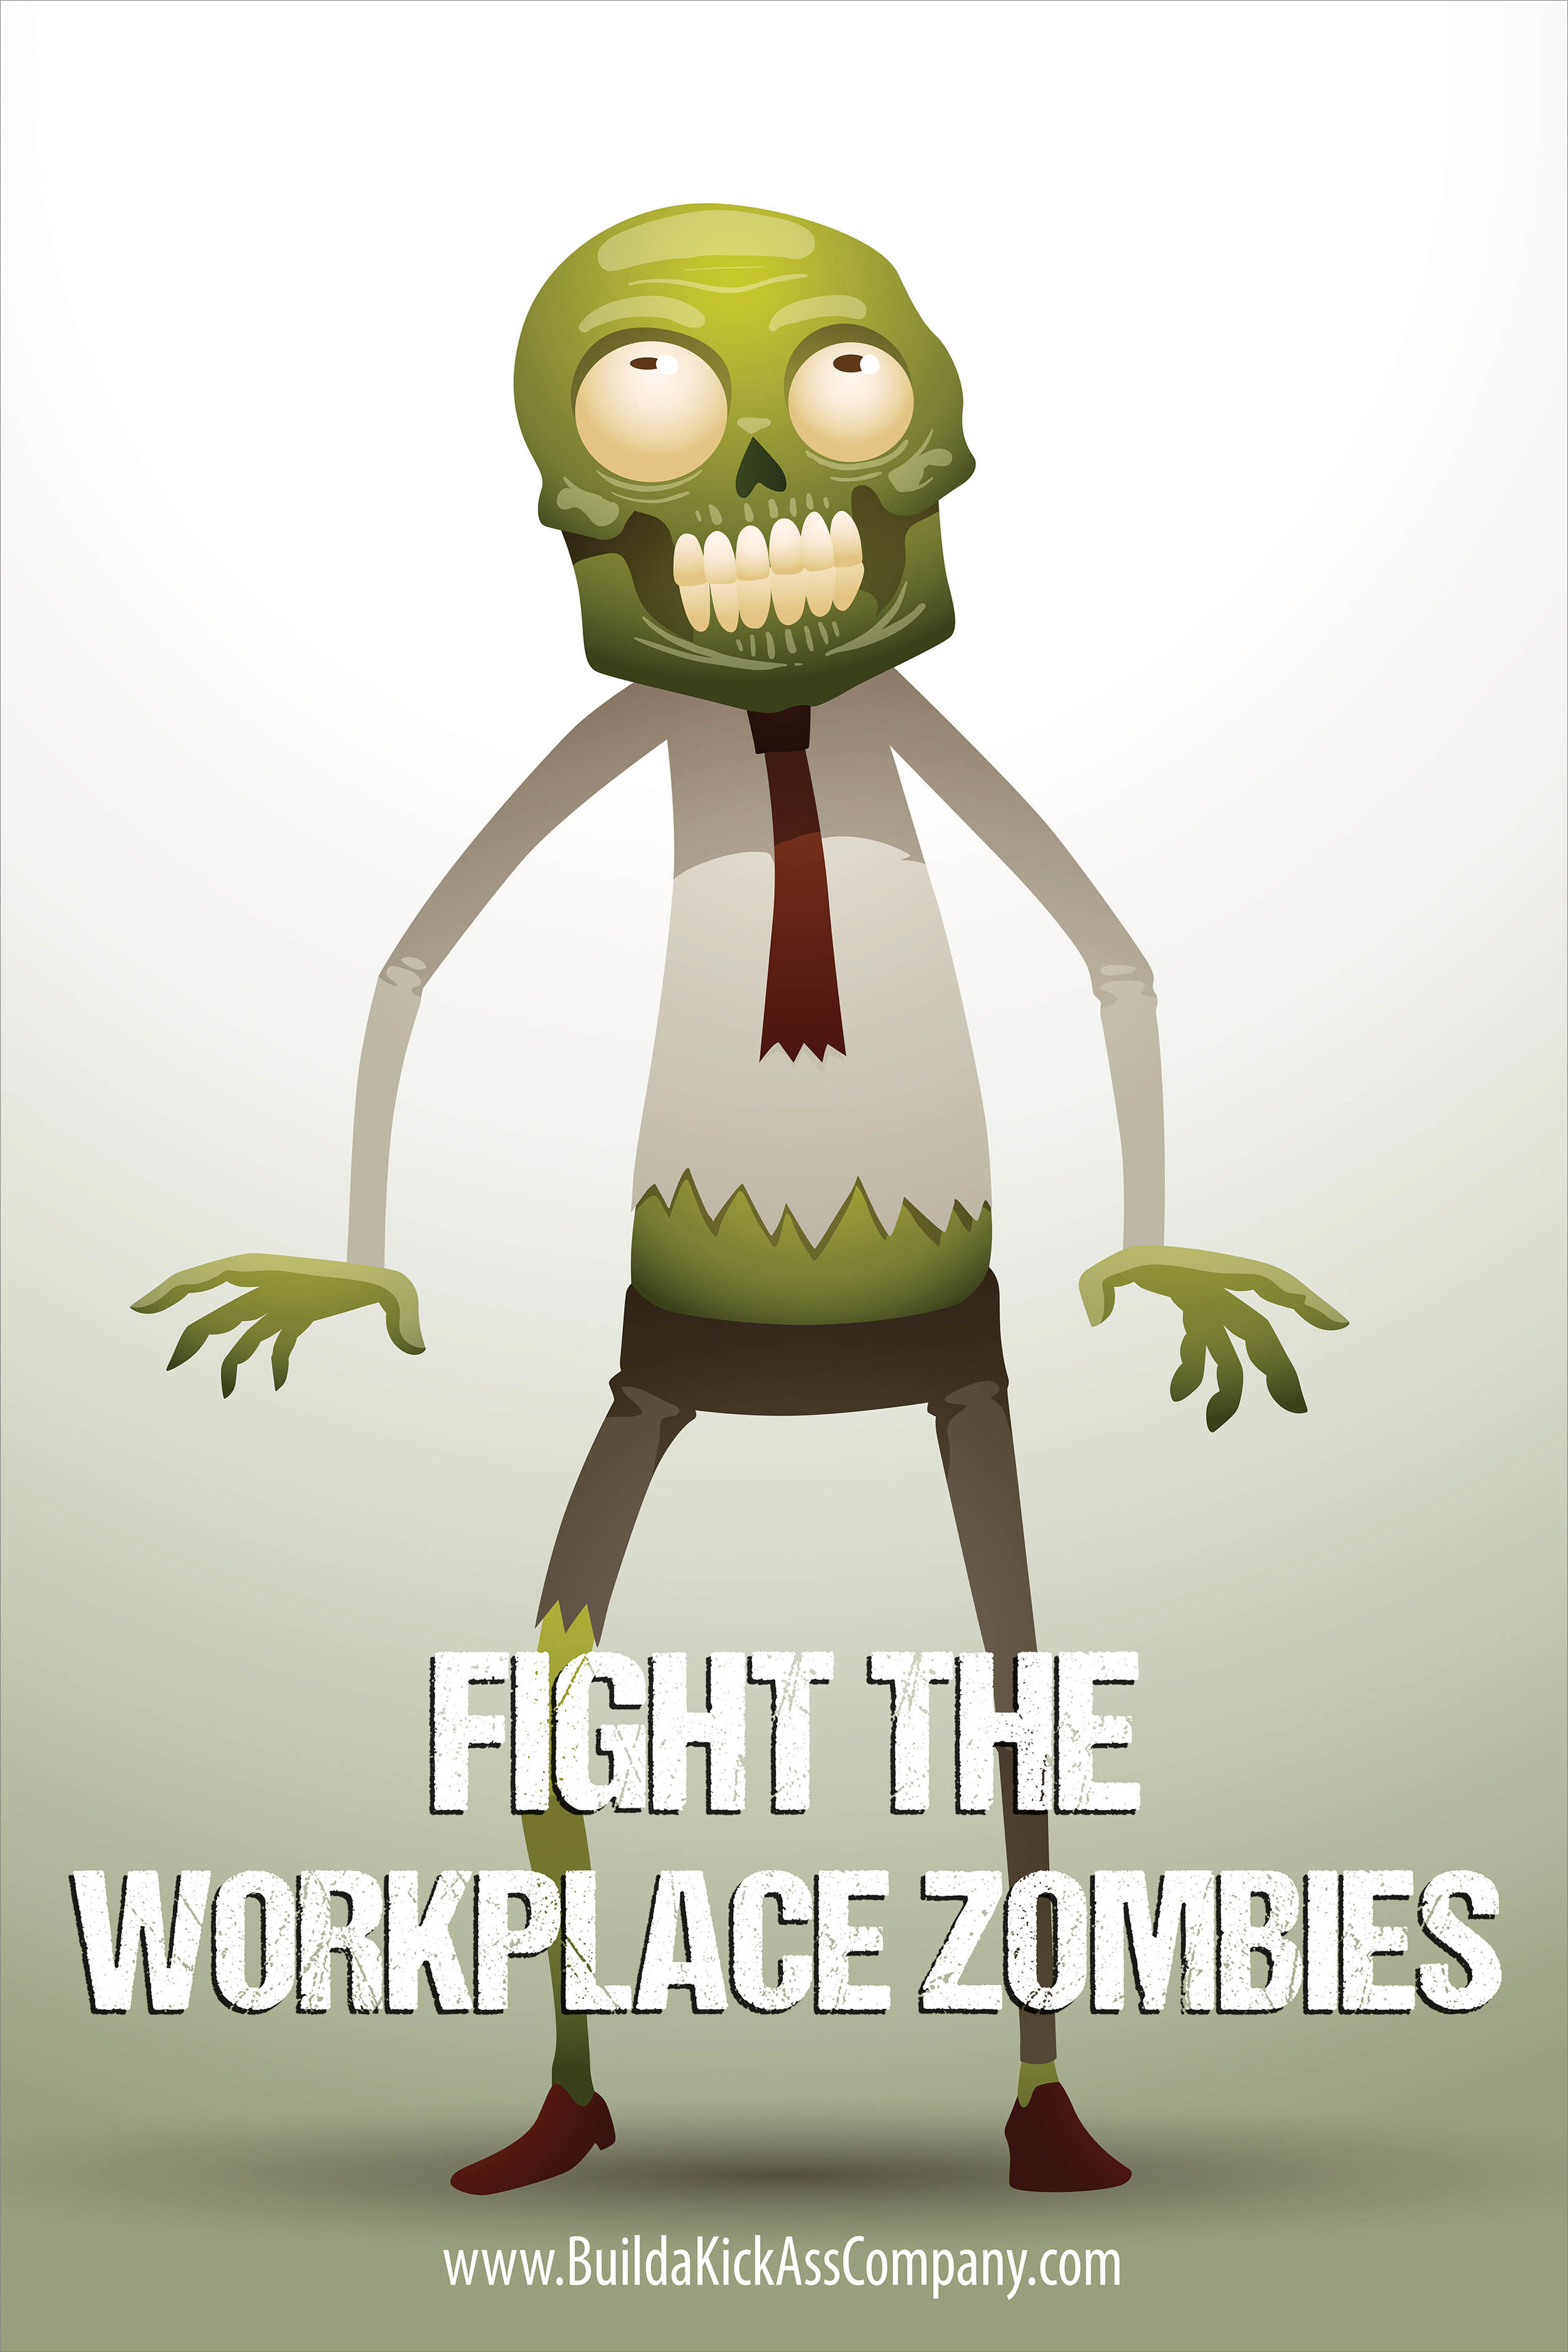 Fight the Workplace Zombies